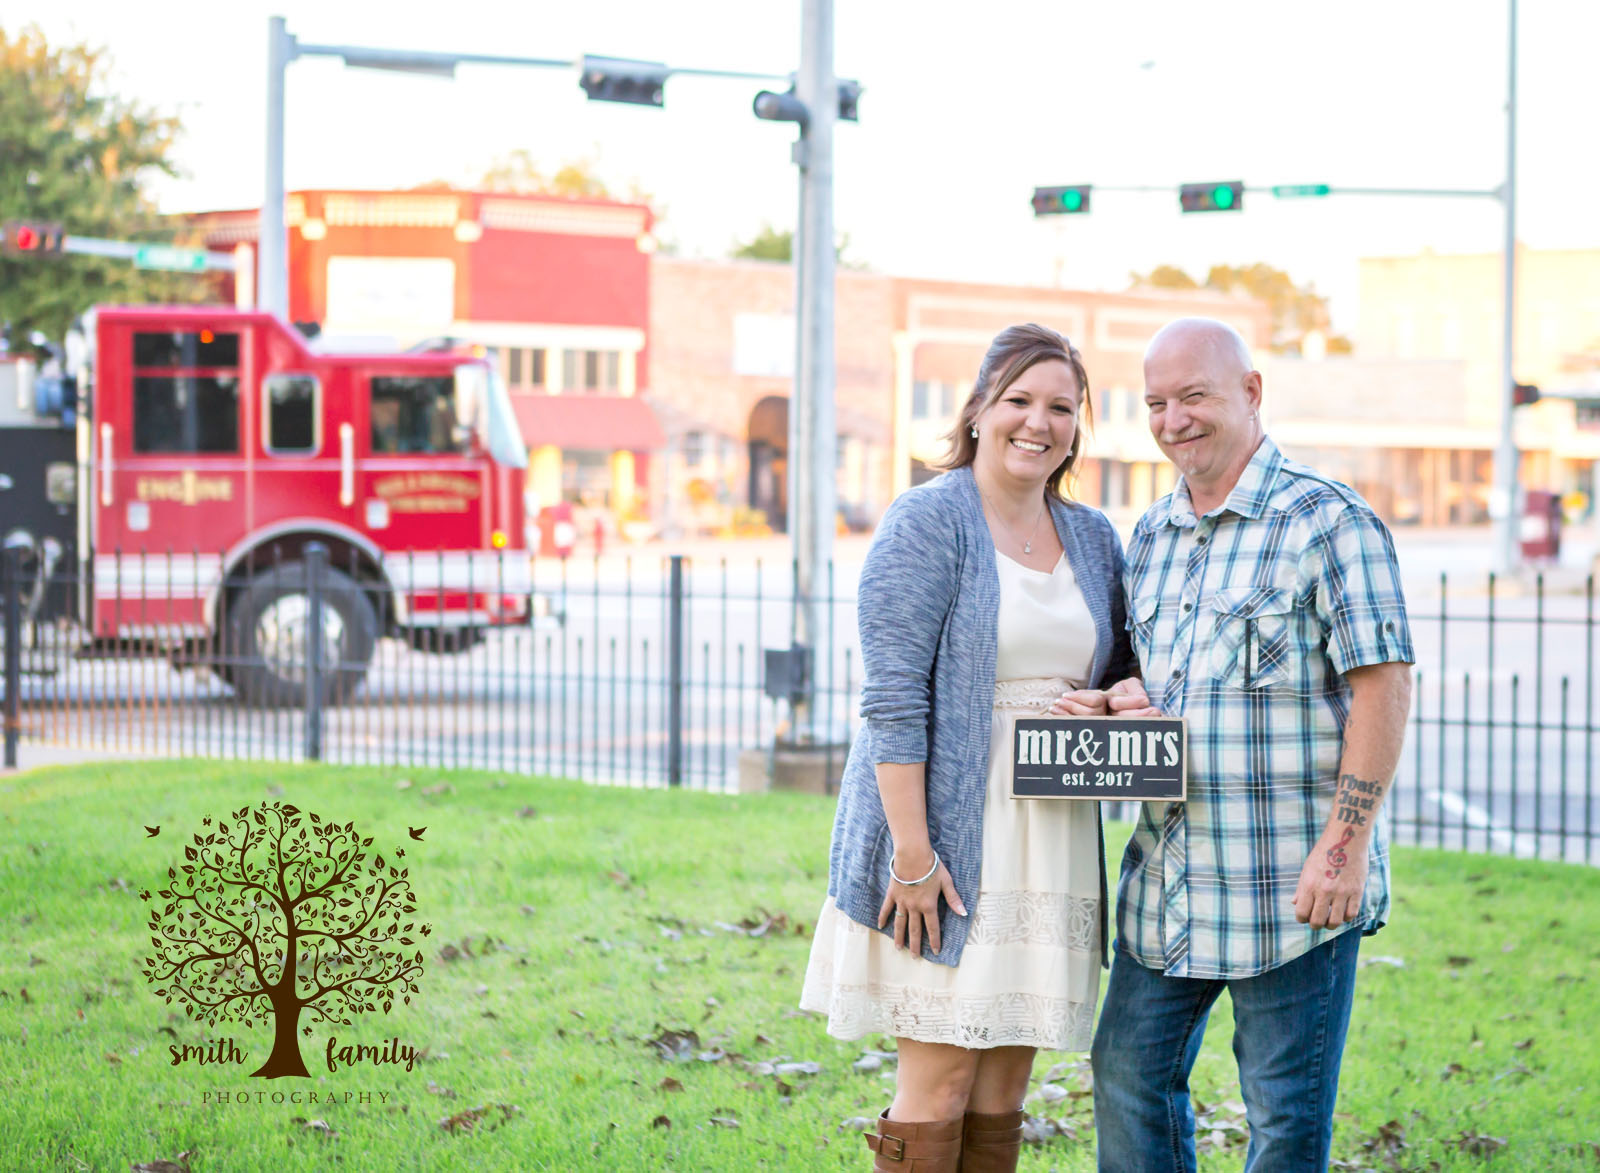 fire_truck_engagement_session_smith_family_photography